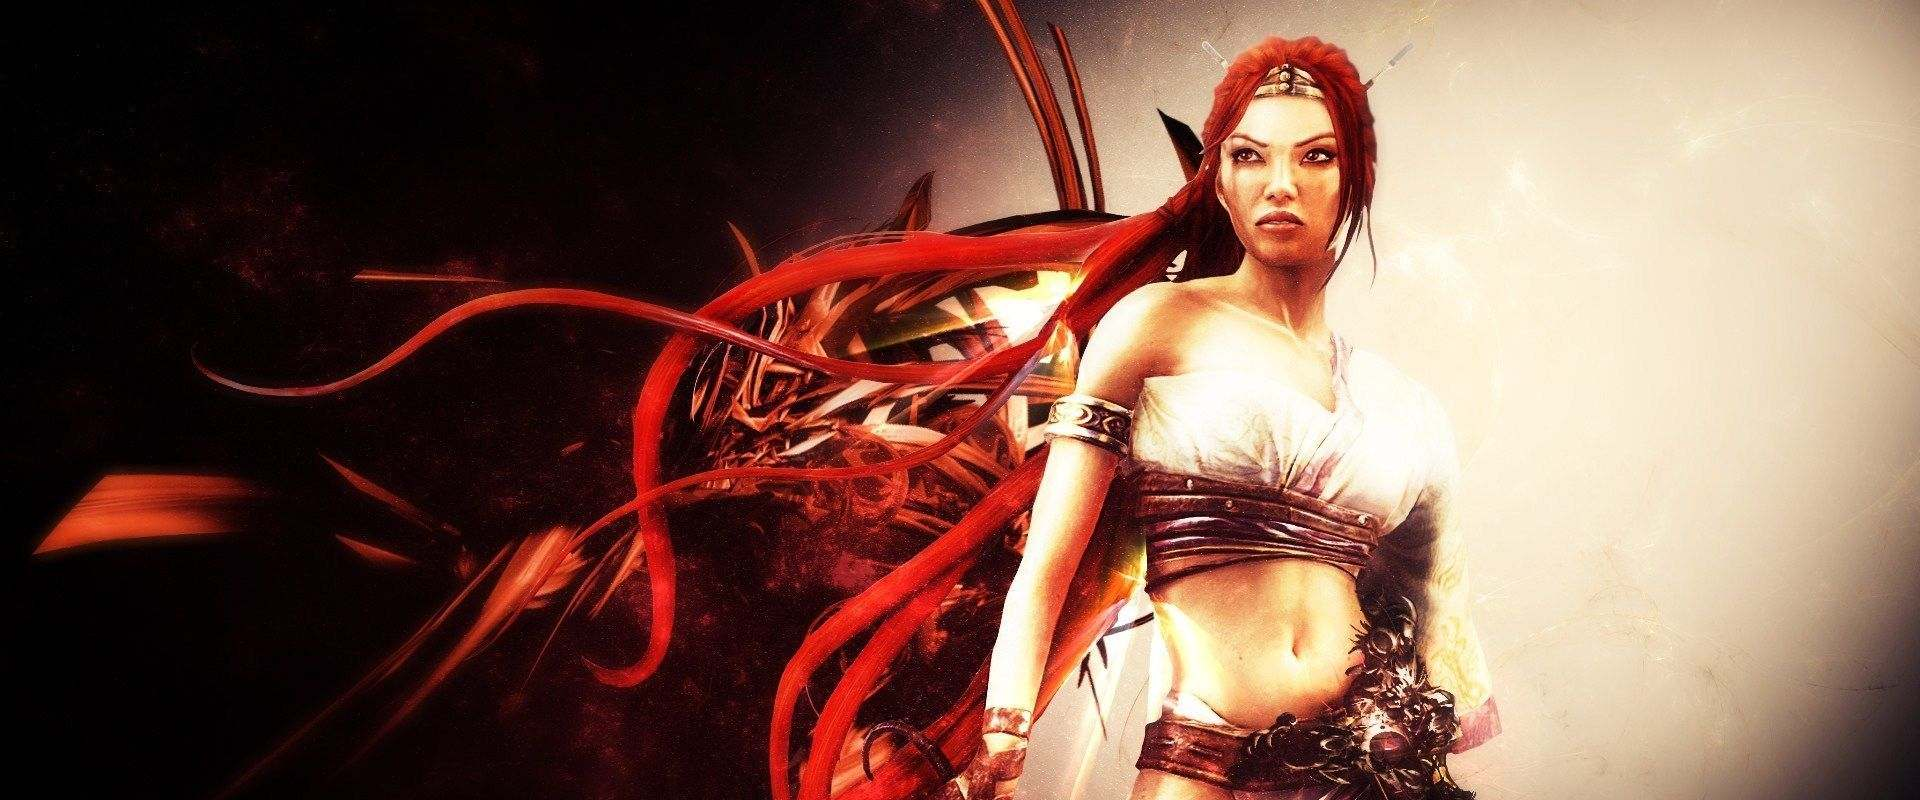 Watch Heavenly Sword On Netflix Today Netflixmovies Com